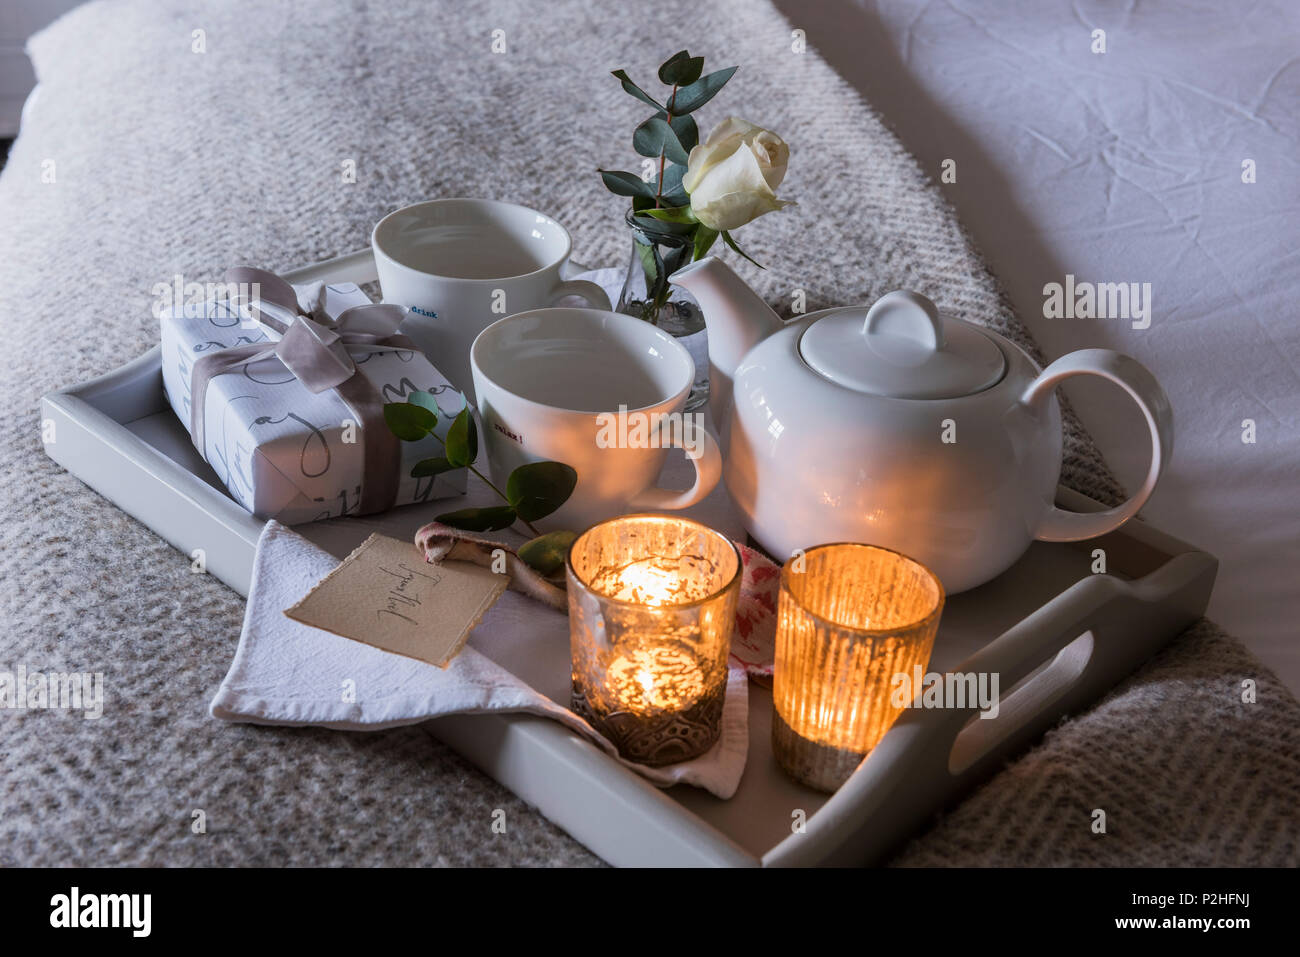 Detail of a tealight lit breakfast tray with small wrapped present and white rose. - Stock Image